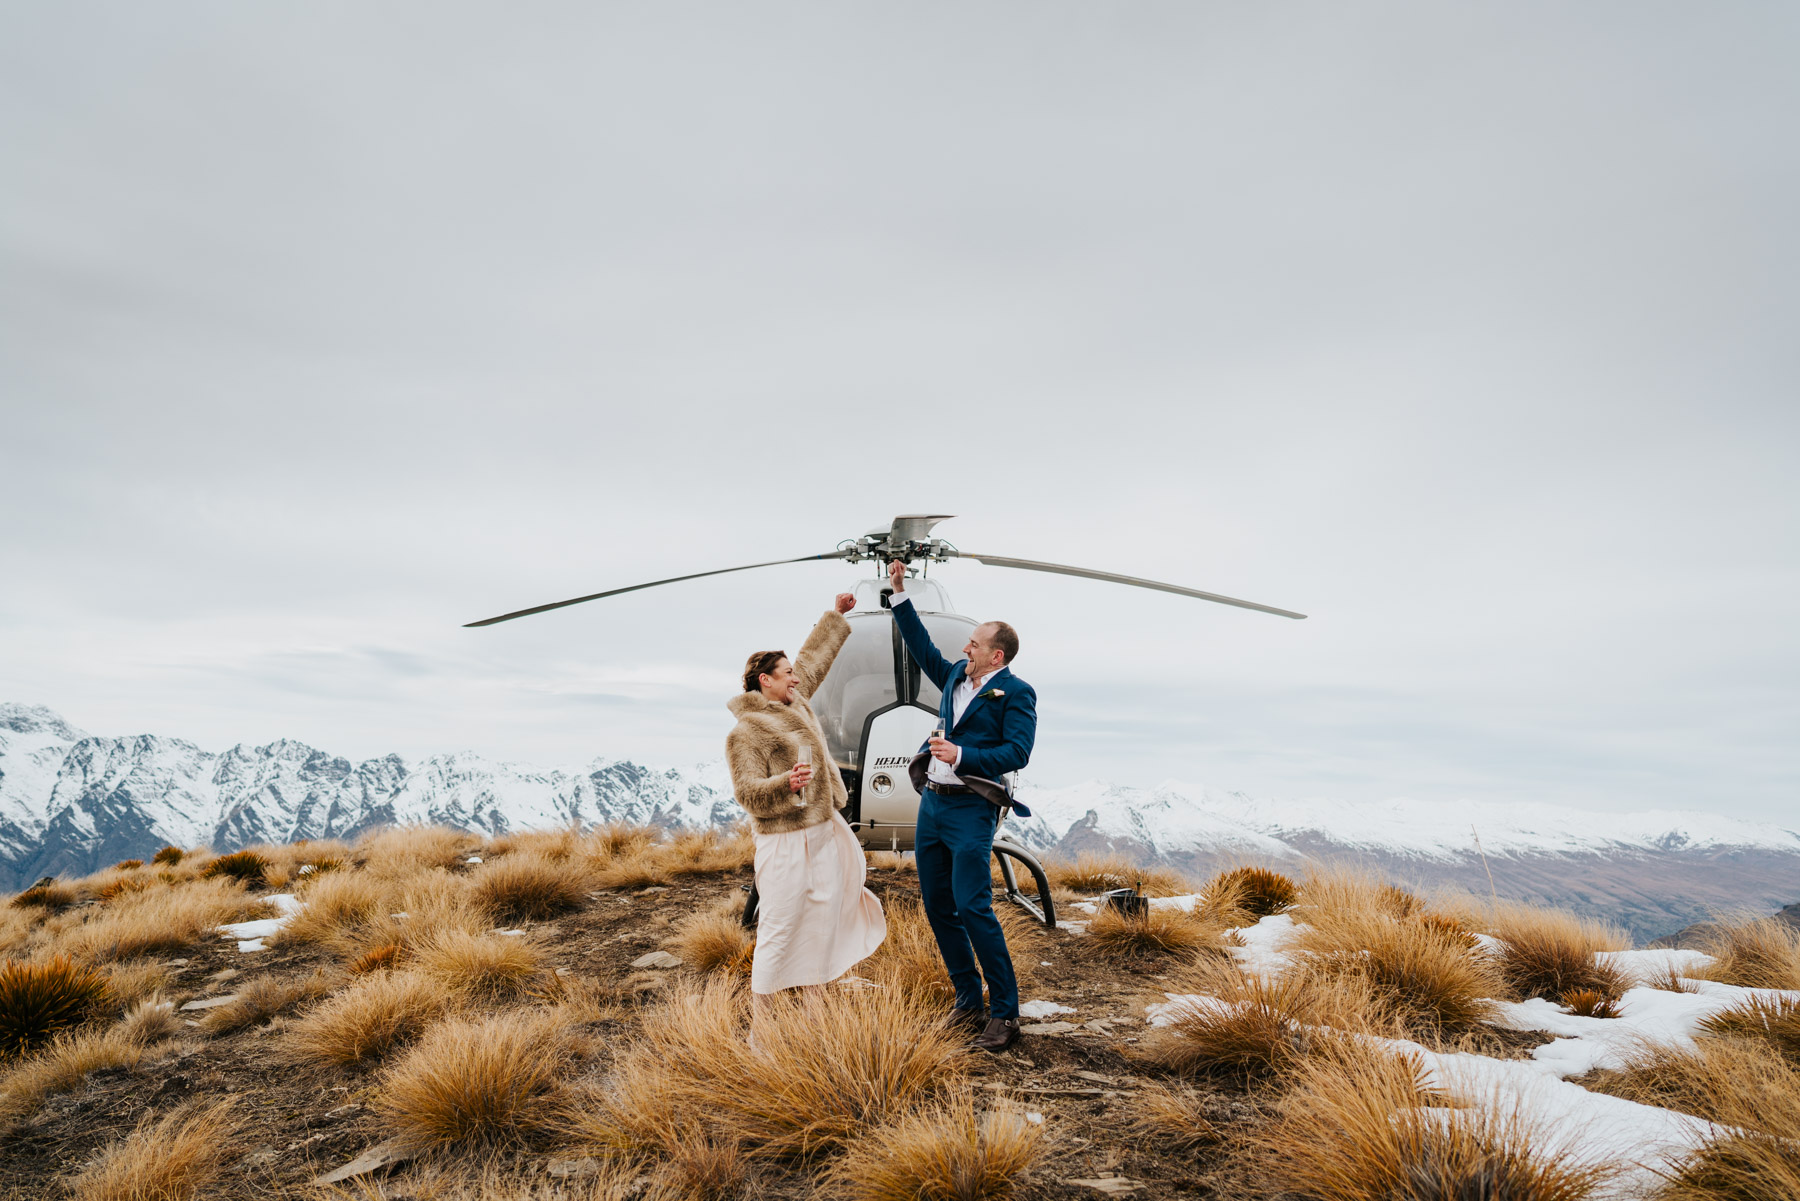 Victoria + Brett / Cecil Peak Winter Elopement